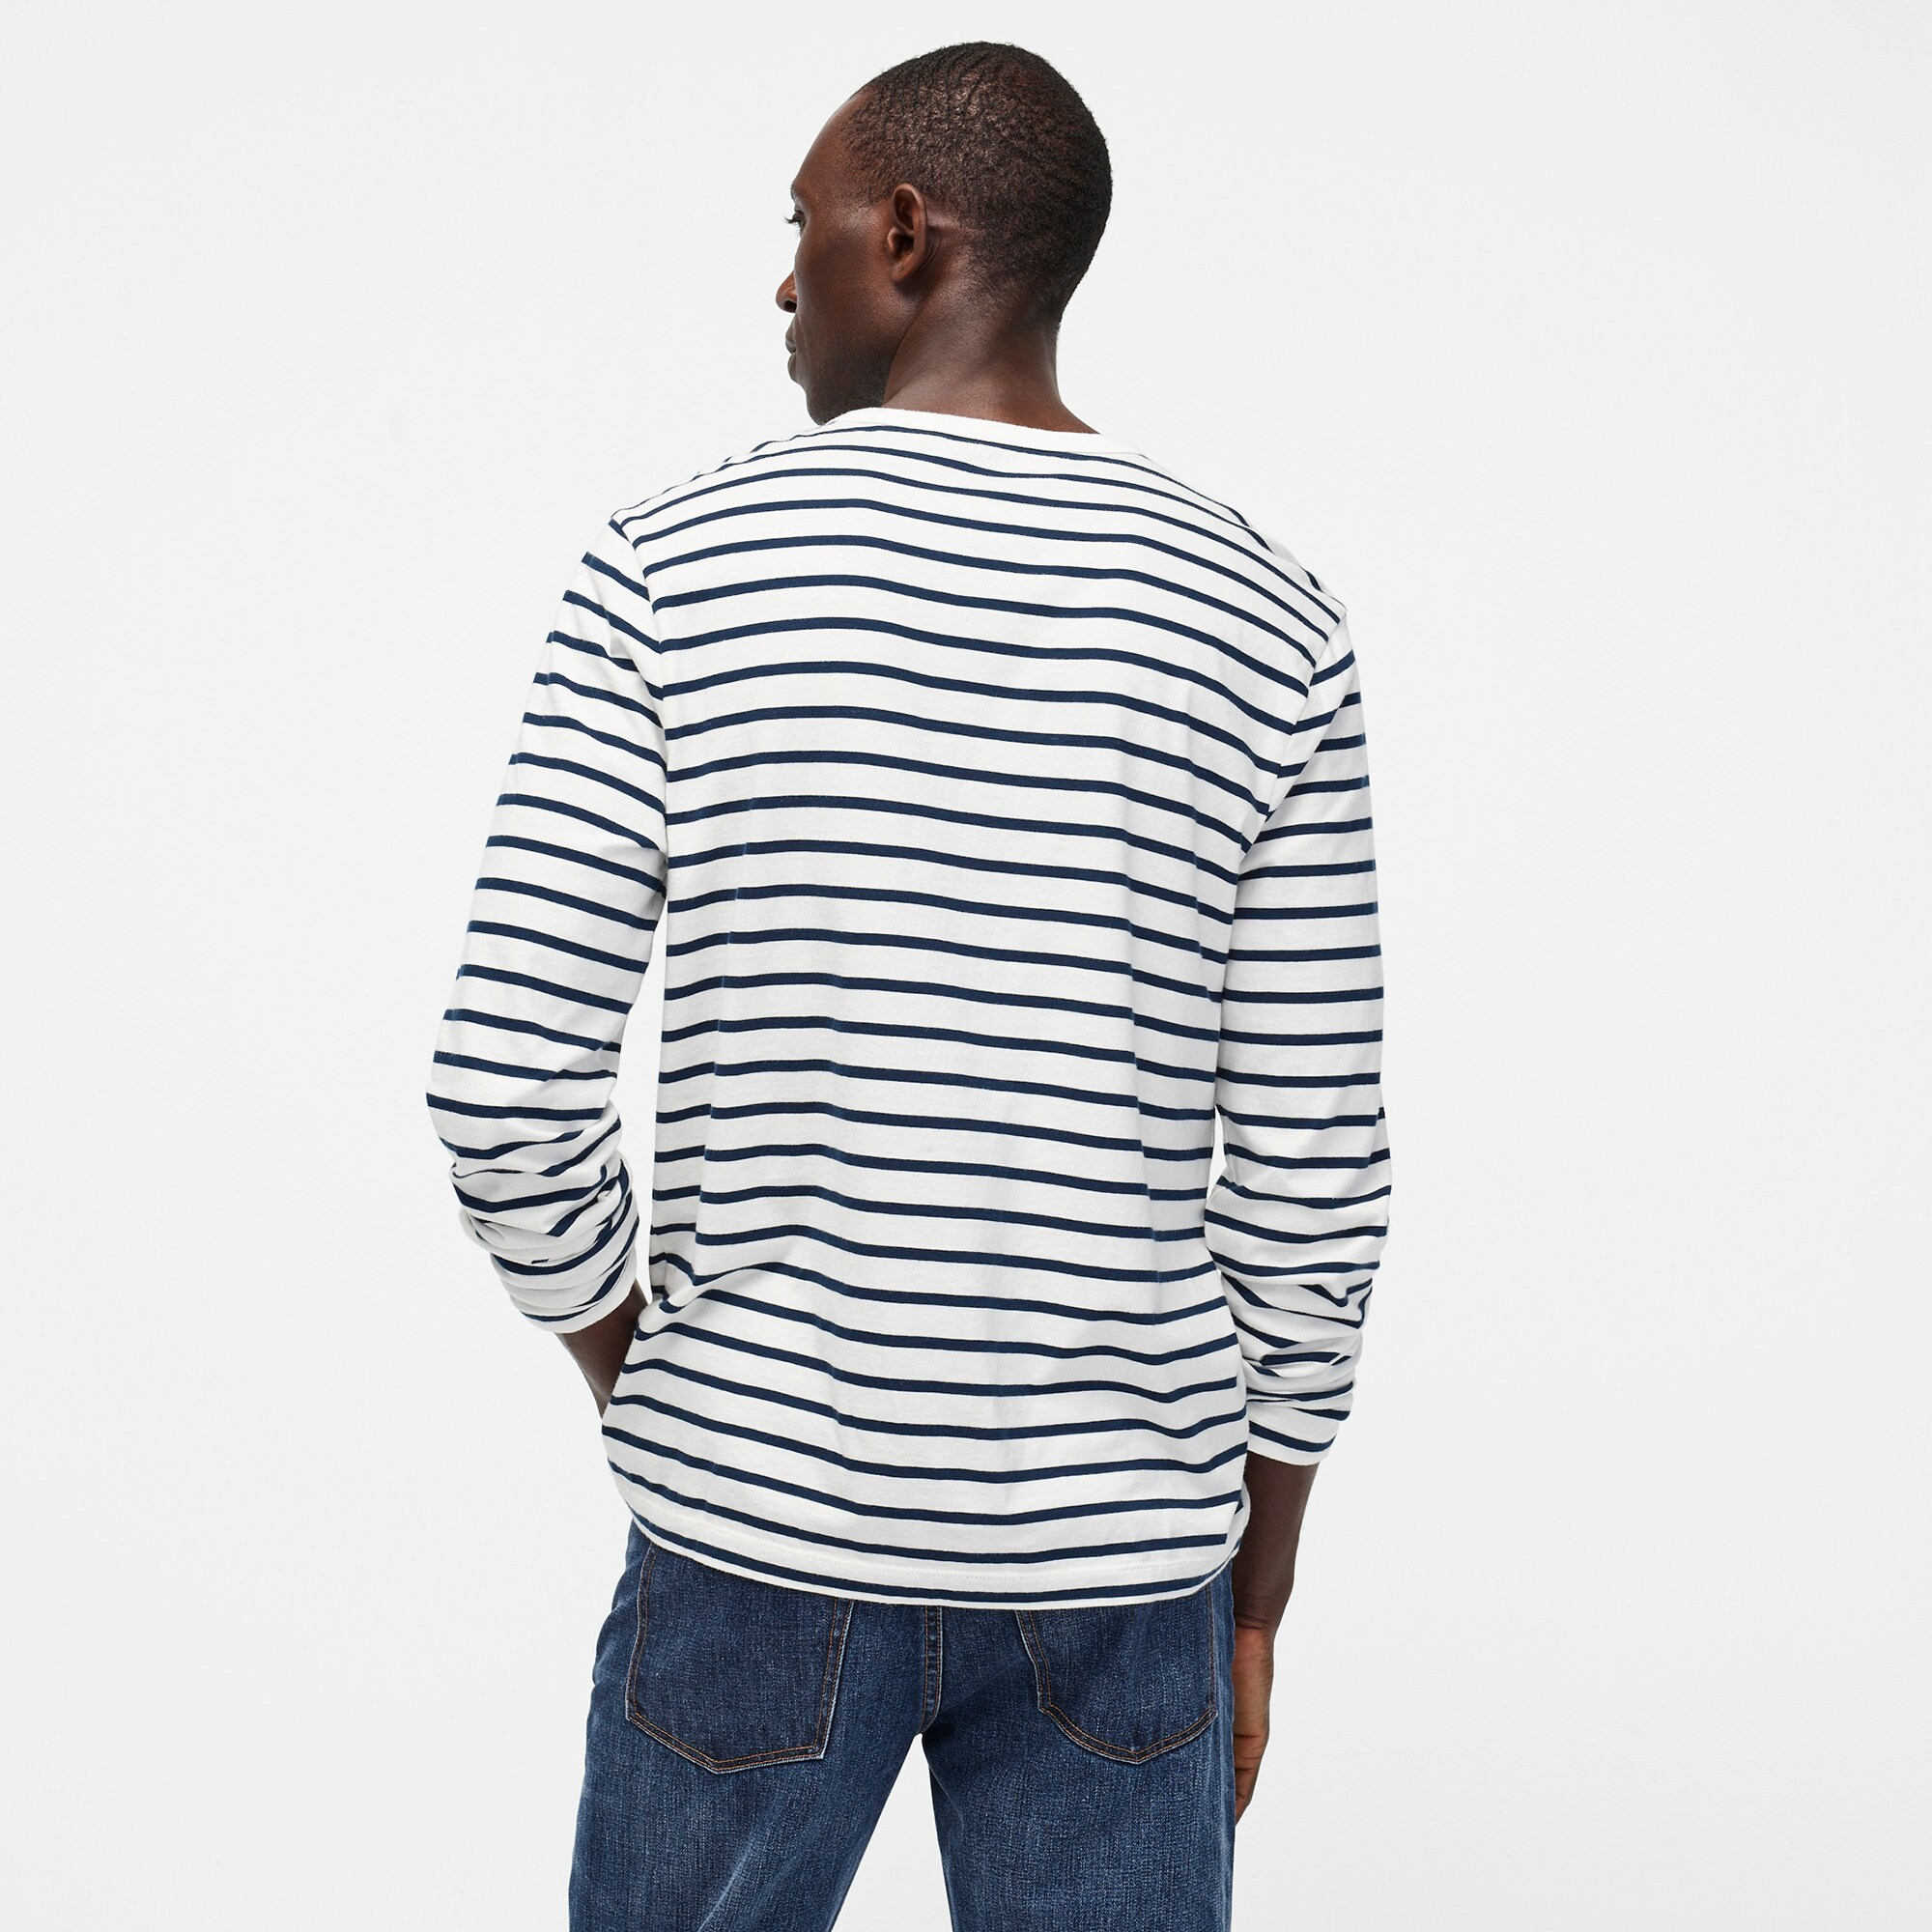 Image 3 for Tall J.Crew Mercantile Broken-in long-sleeve T-shirt in deck stripe